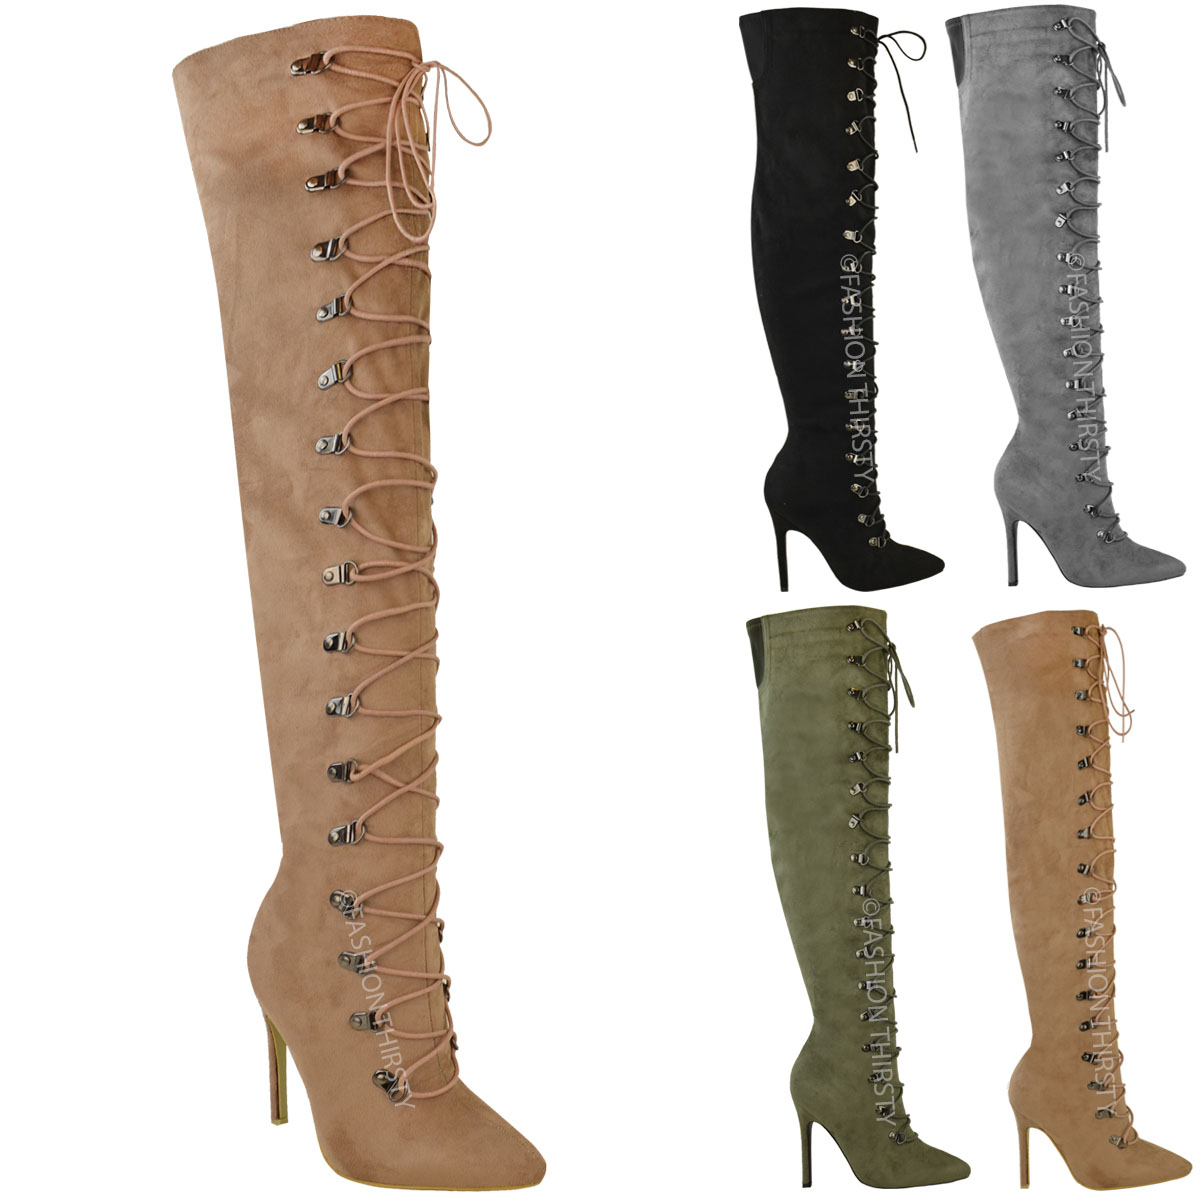 aa900c1e1d4 Laced Knee High Heel Boots Best Picture Of Boot Imageco